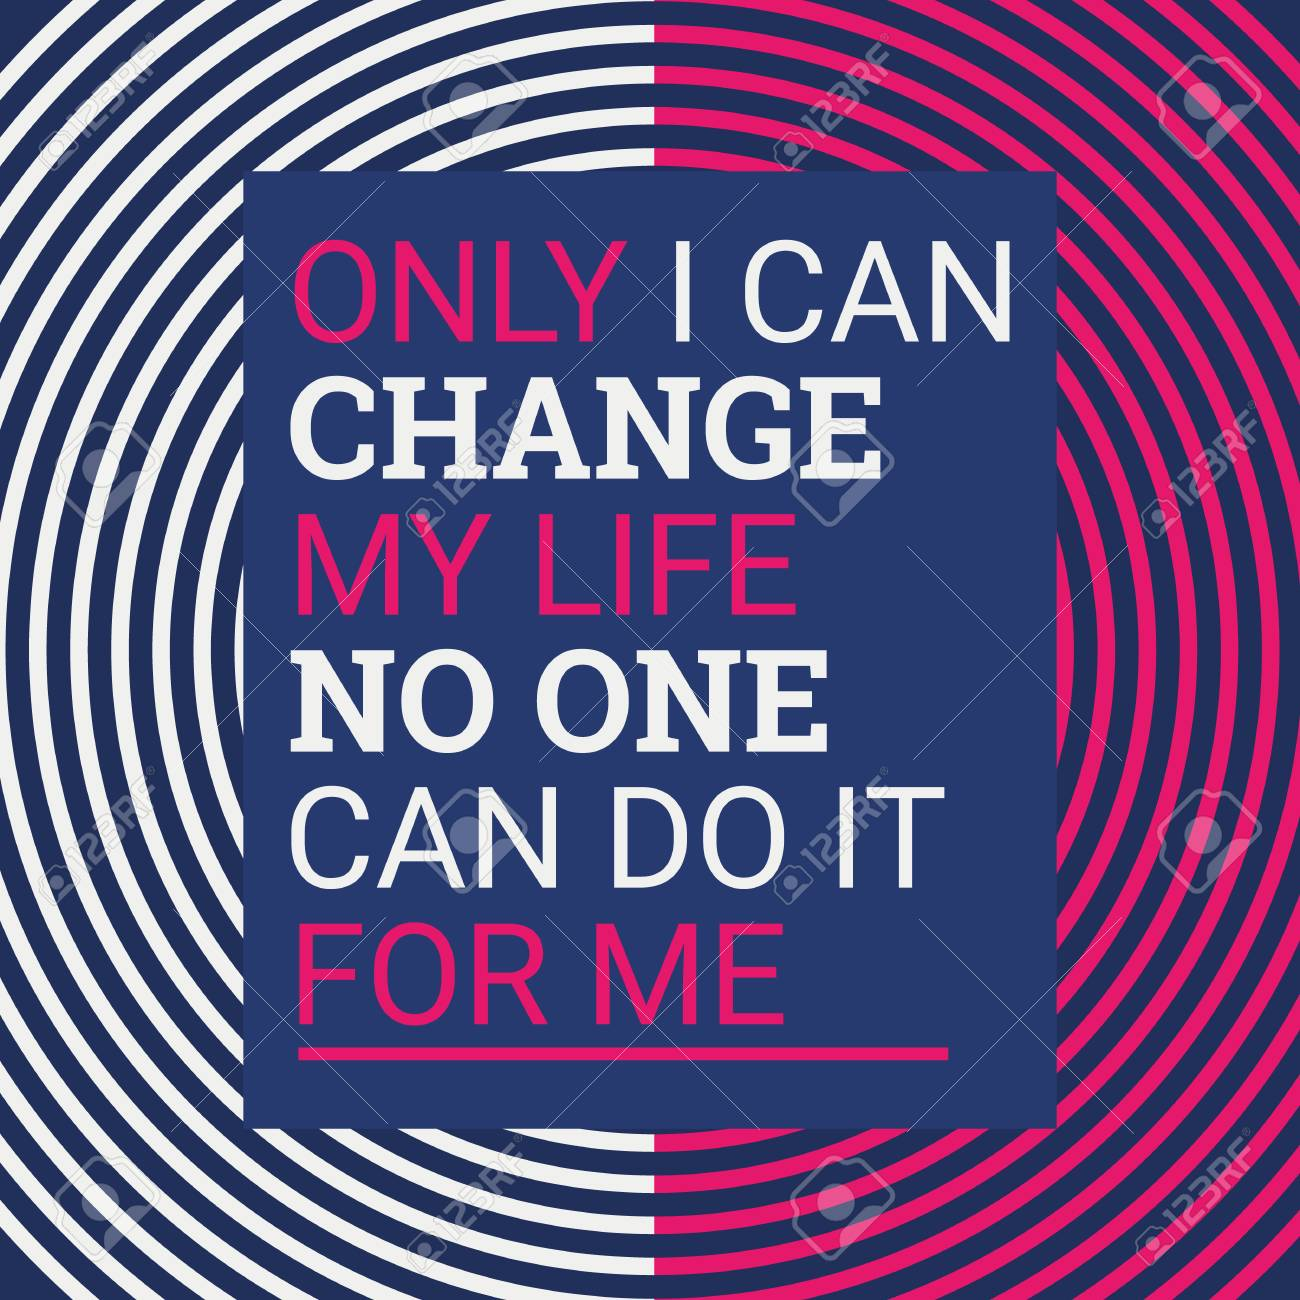 Only I Can Change My Life Motivational Quotes Flat Design